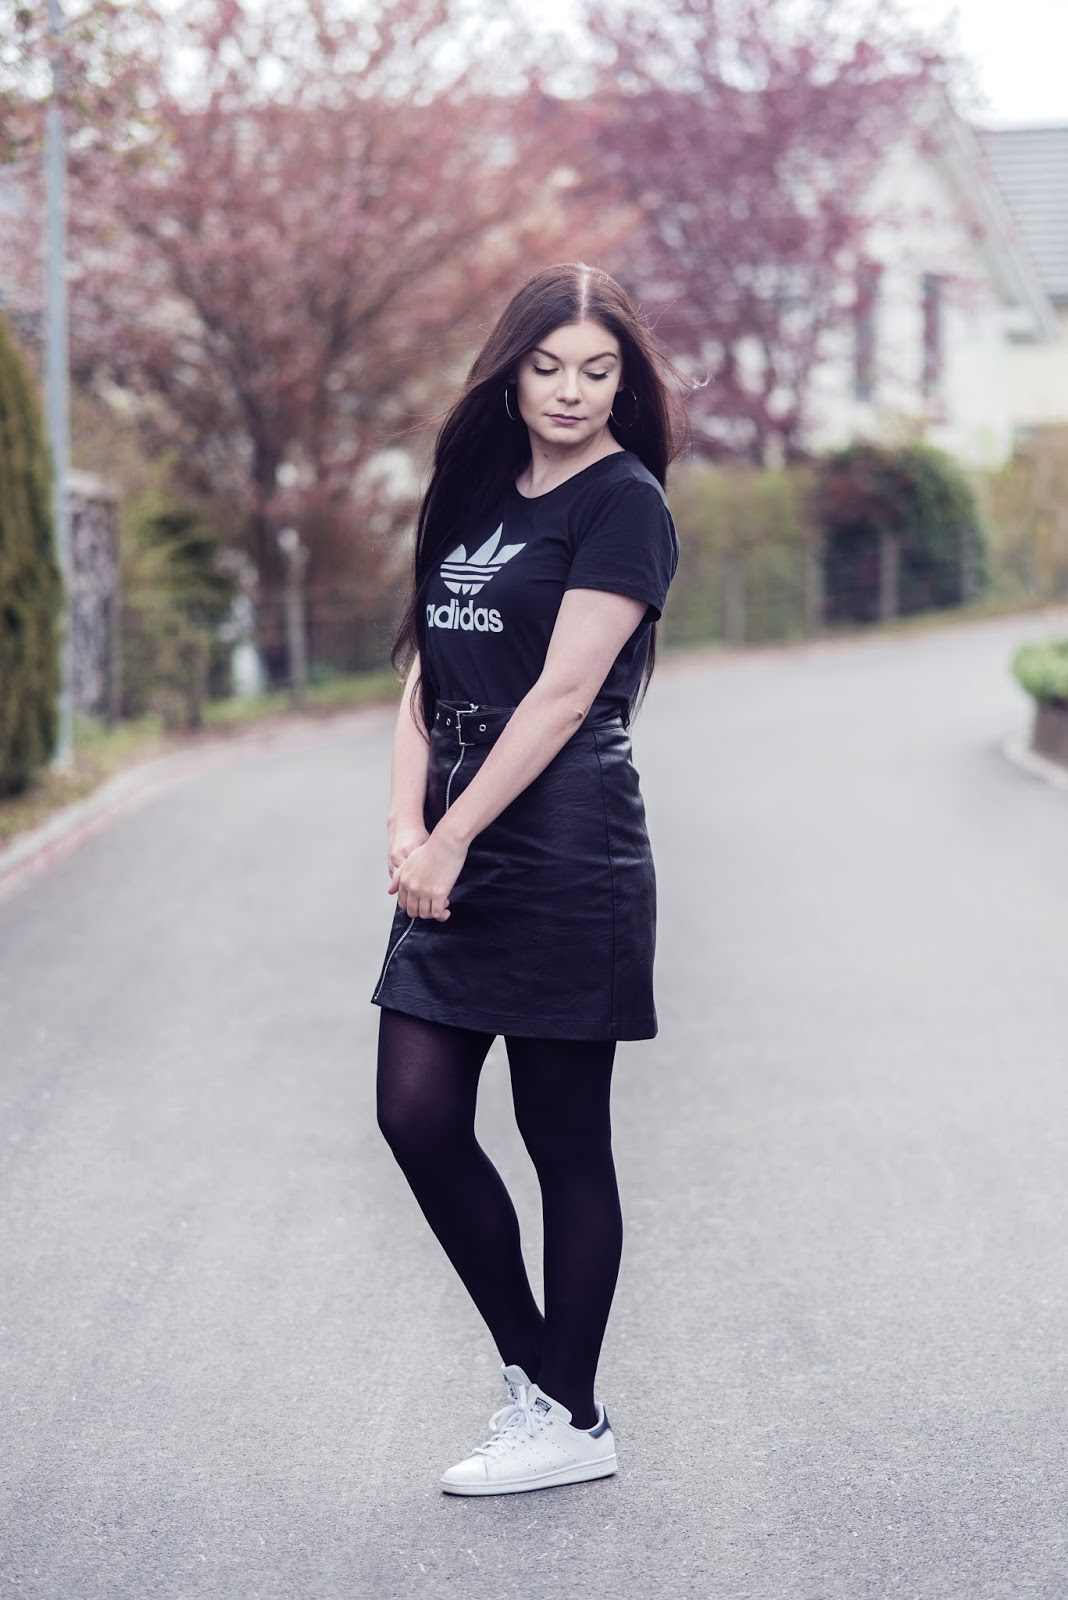 Sporty Minimalist Outfit   Adidas Shirt, Leather Skirt and Sneakers   Rose Kiara Peaches